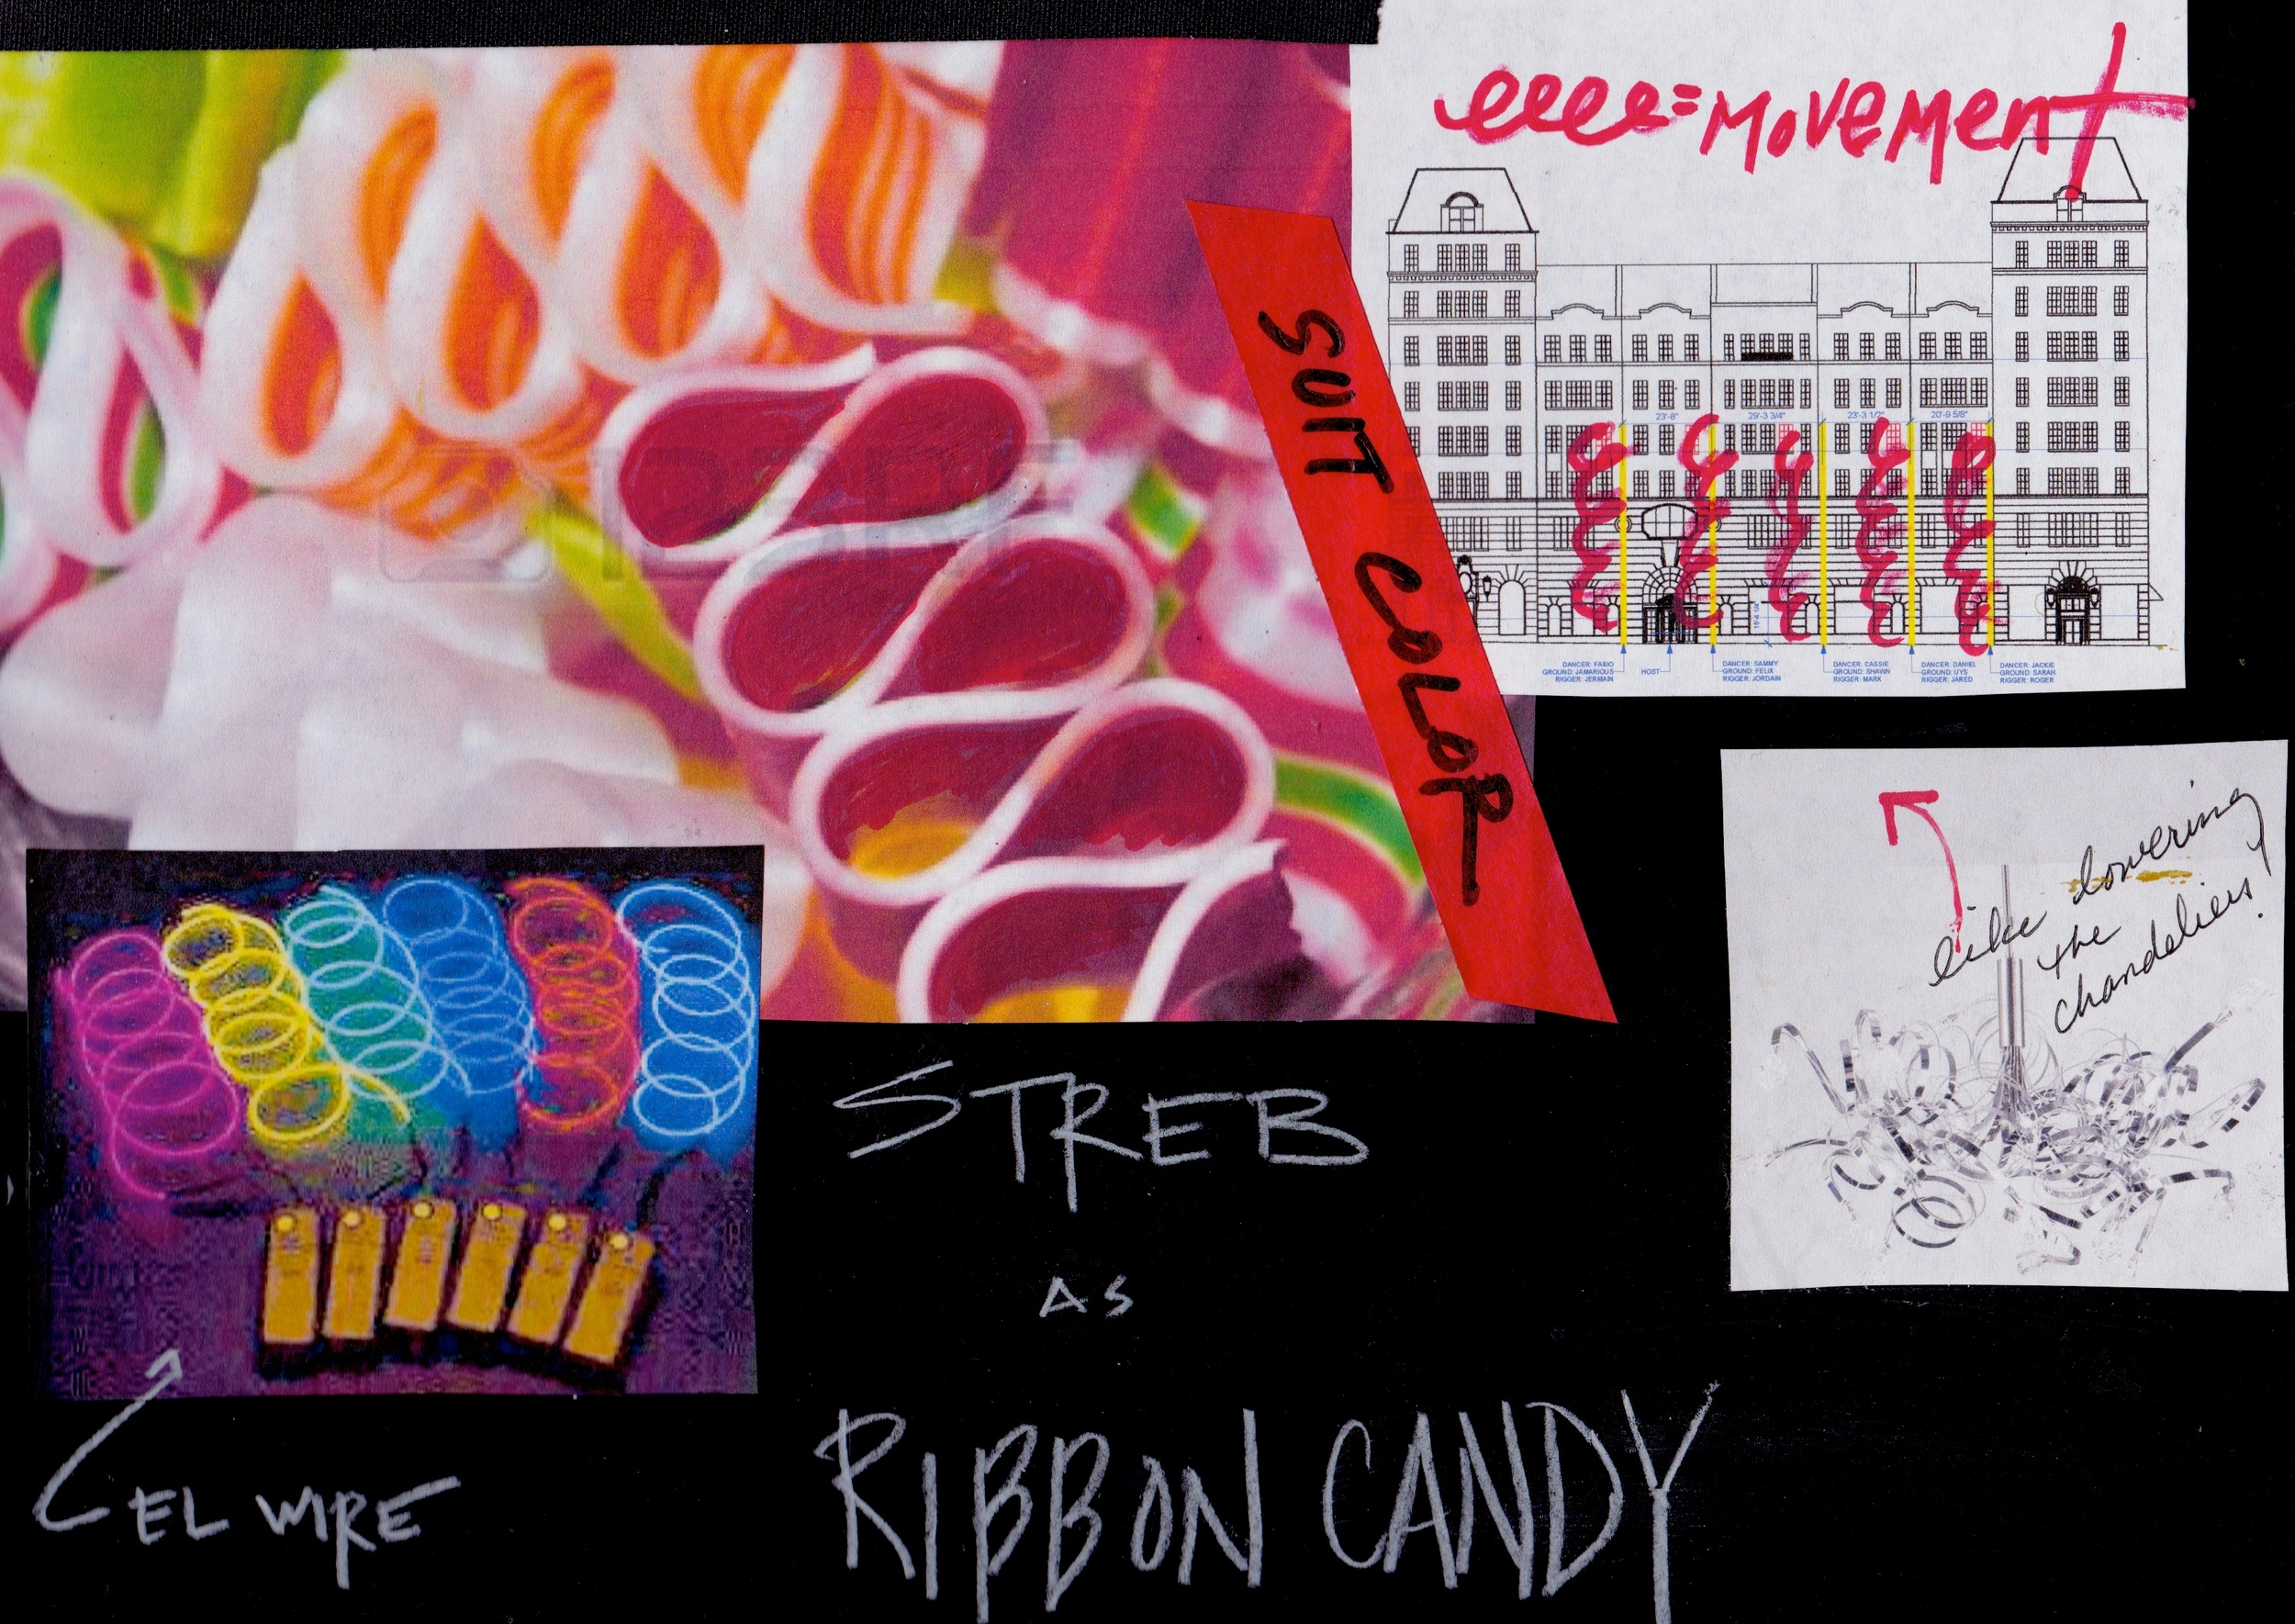 Initial concept mood board: Streb as electric ribbon candy.